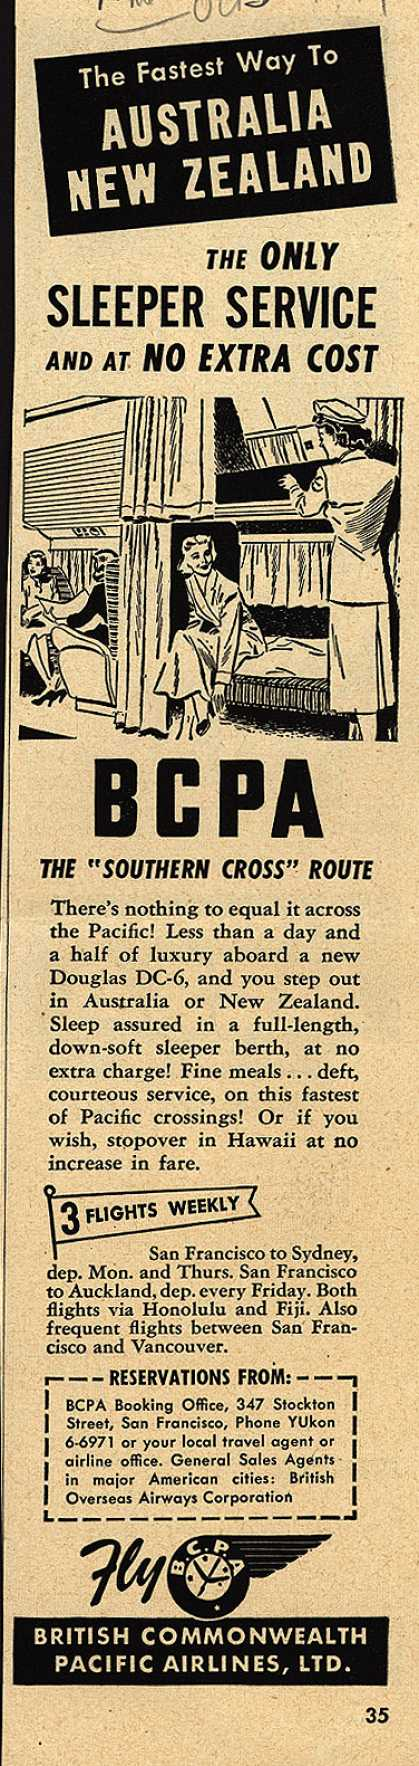 British Commonwealth Pacific Airlines, Limited's Australia, New Zealand – The Fastest Way to Australia, New Zealand The Only Sleeper Service and at No Extra Cost (1949)